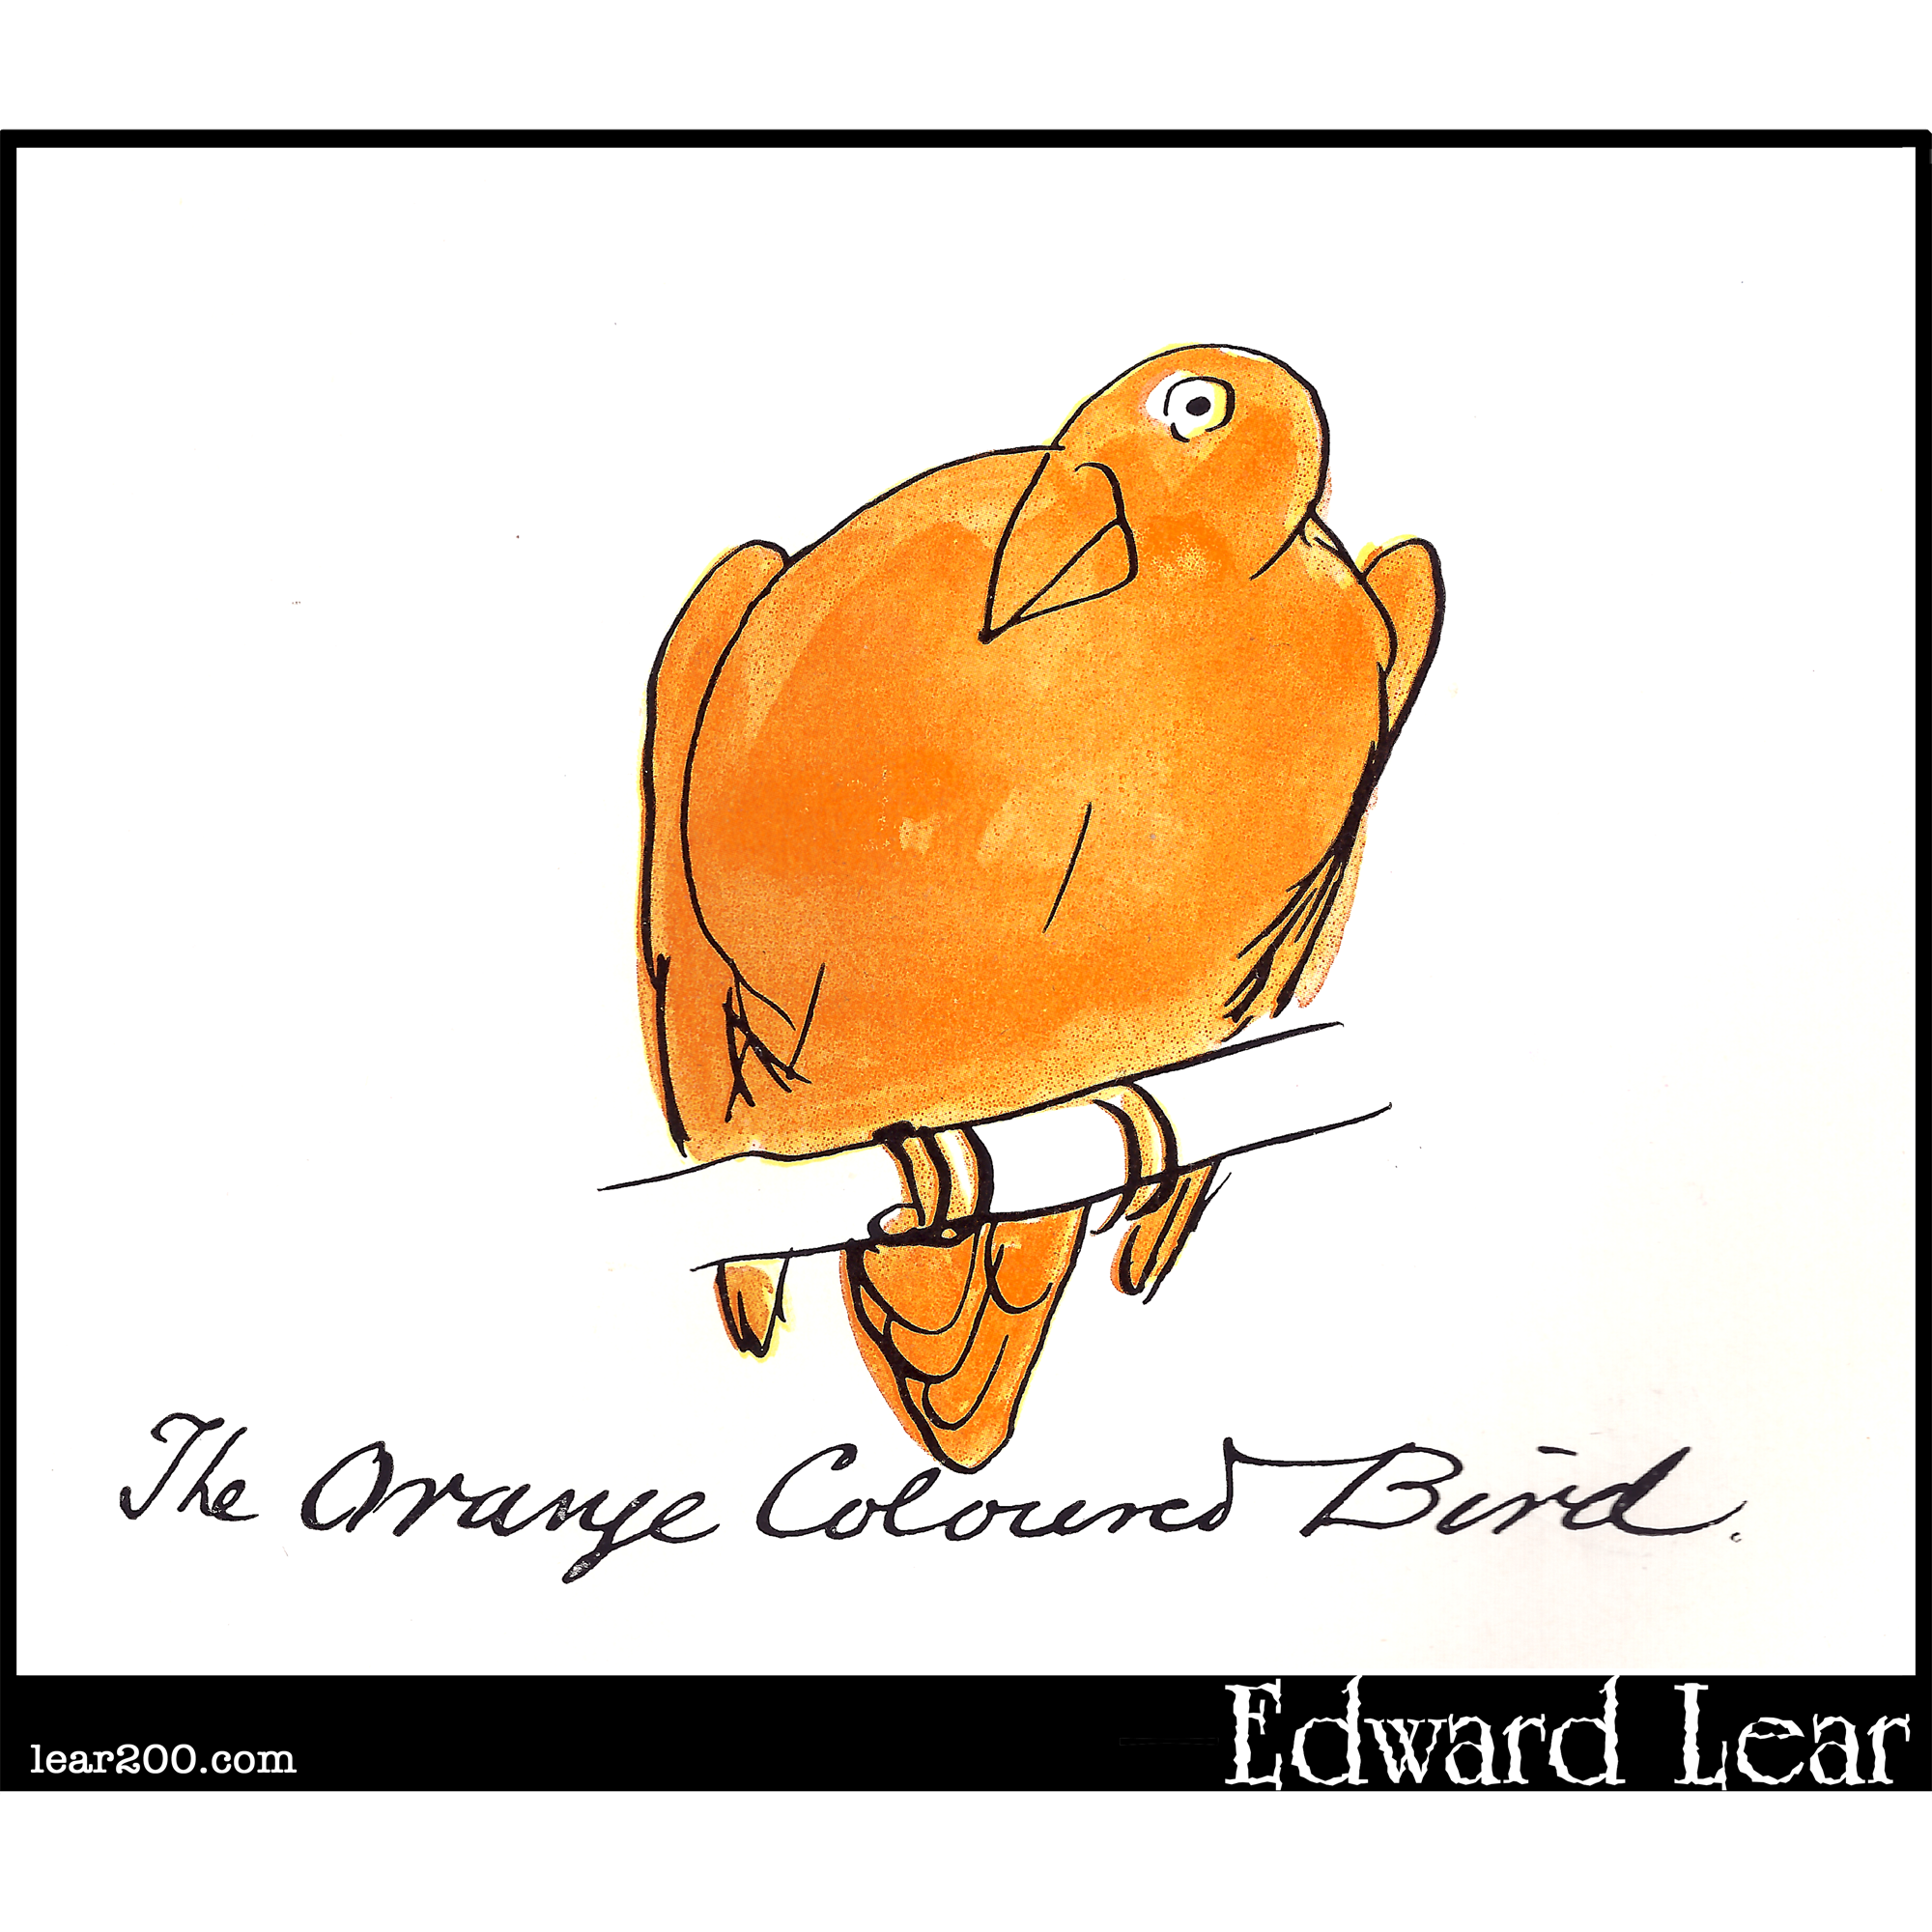 The Orange Coloured Bird